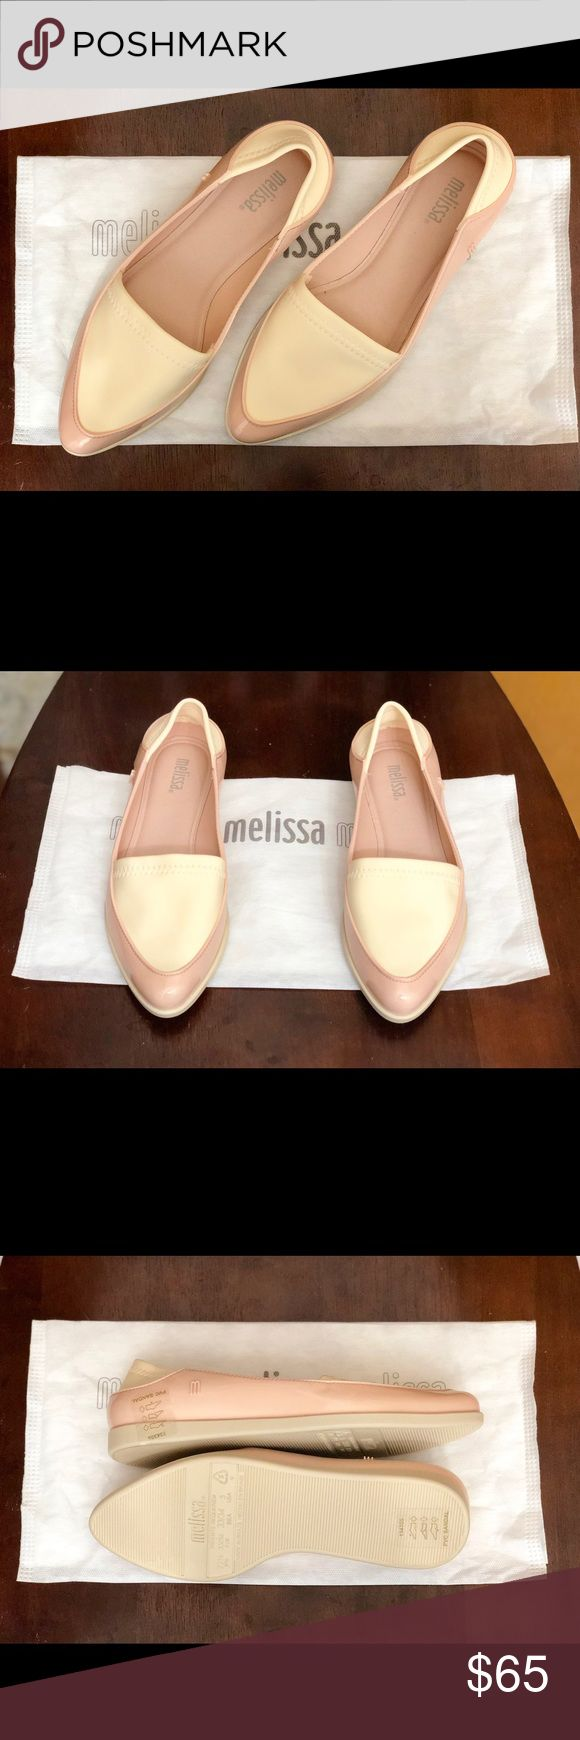 Melissa Flats - Fits 1/2 size bigger - Durable, Hypoallergenic - Bubble gun scent - Made in Brazil - Comes with a dust bag and show box Melissa Shoes Flats & Loafers